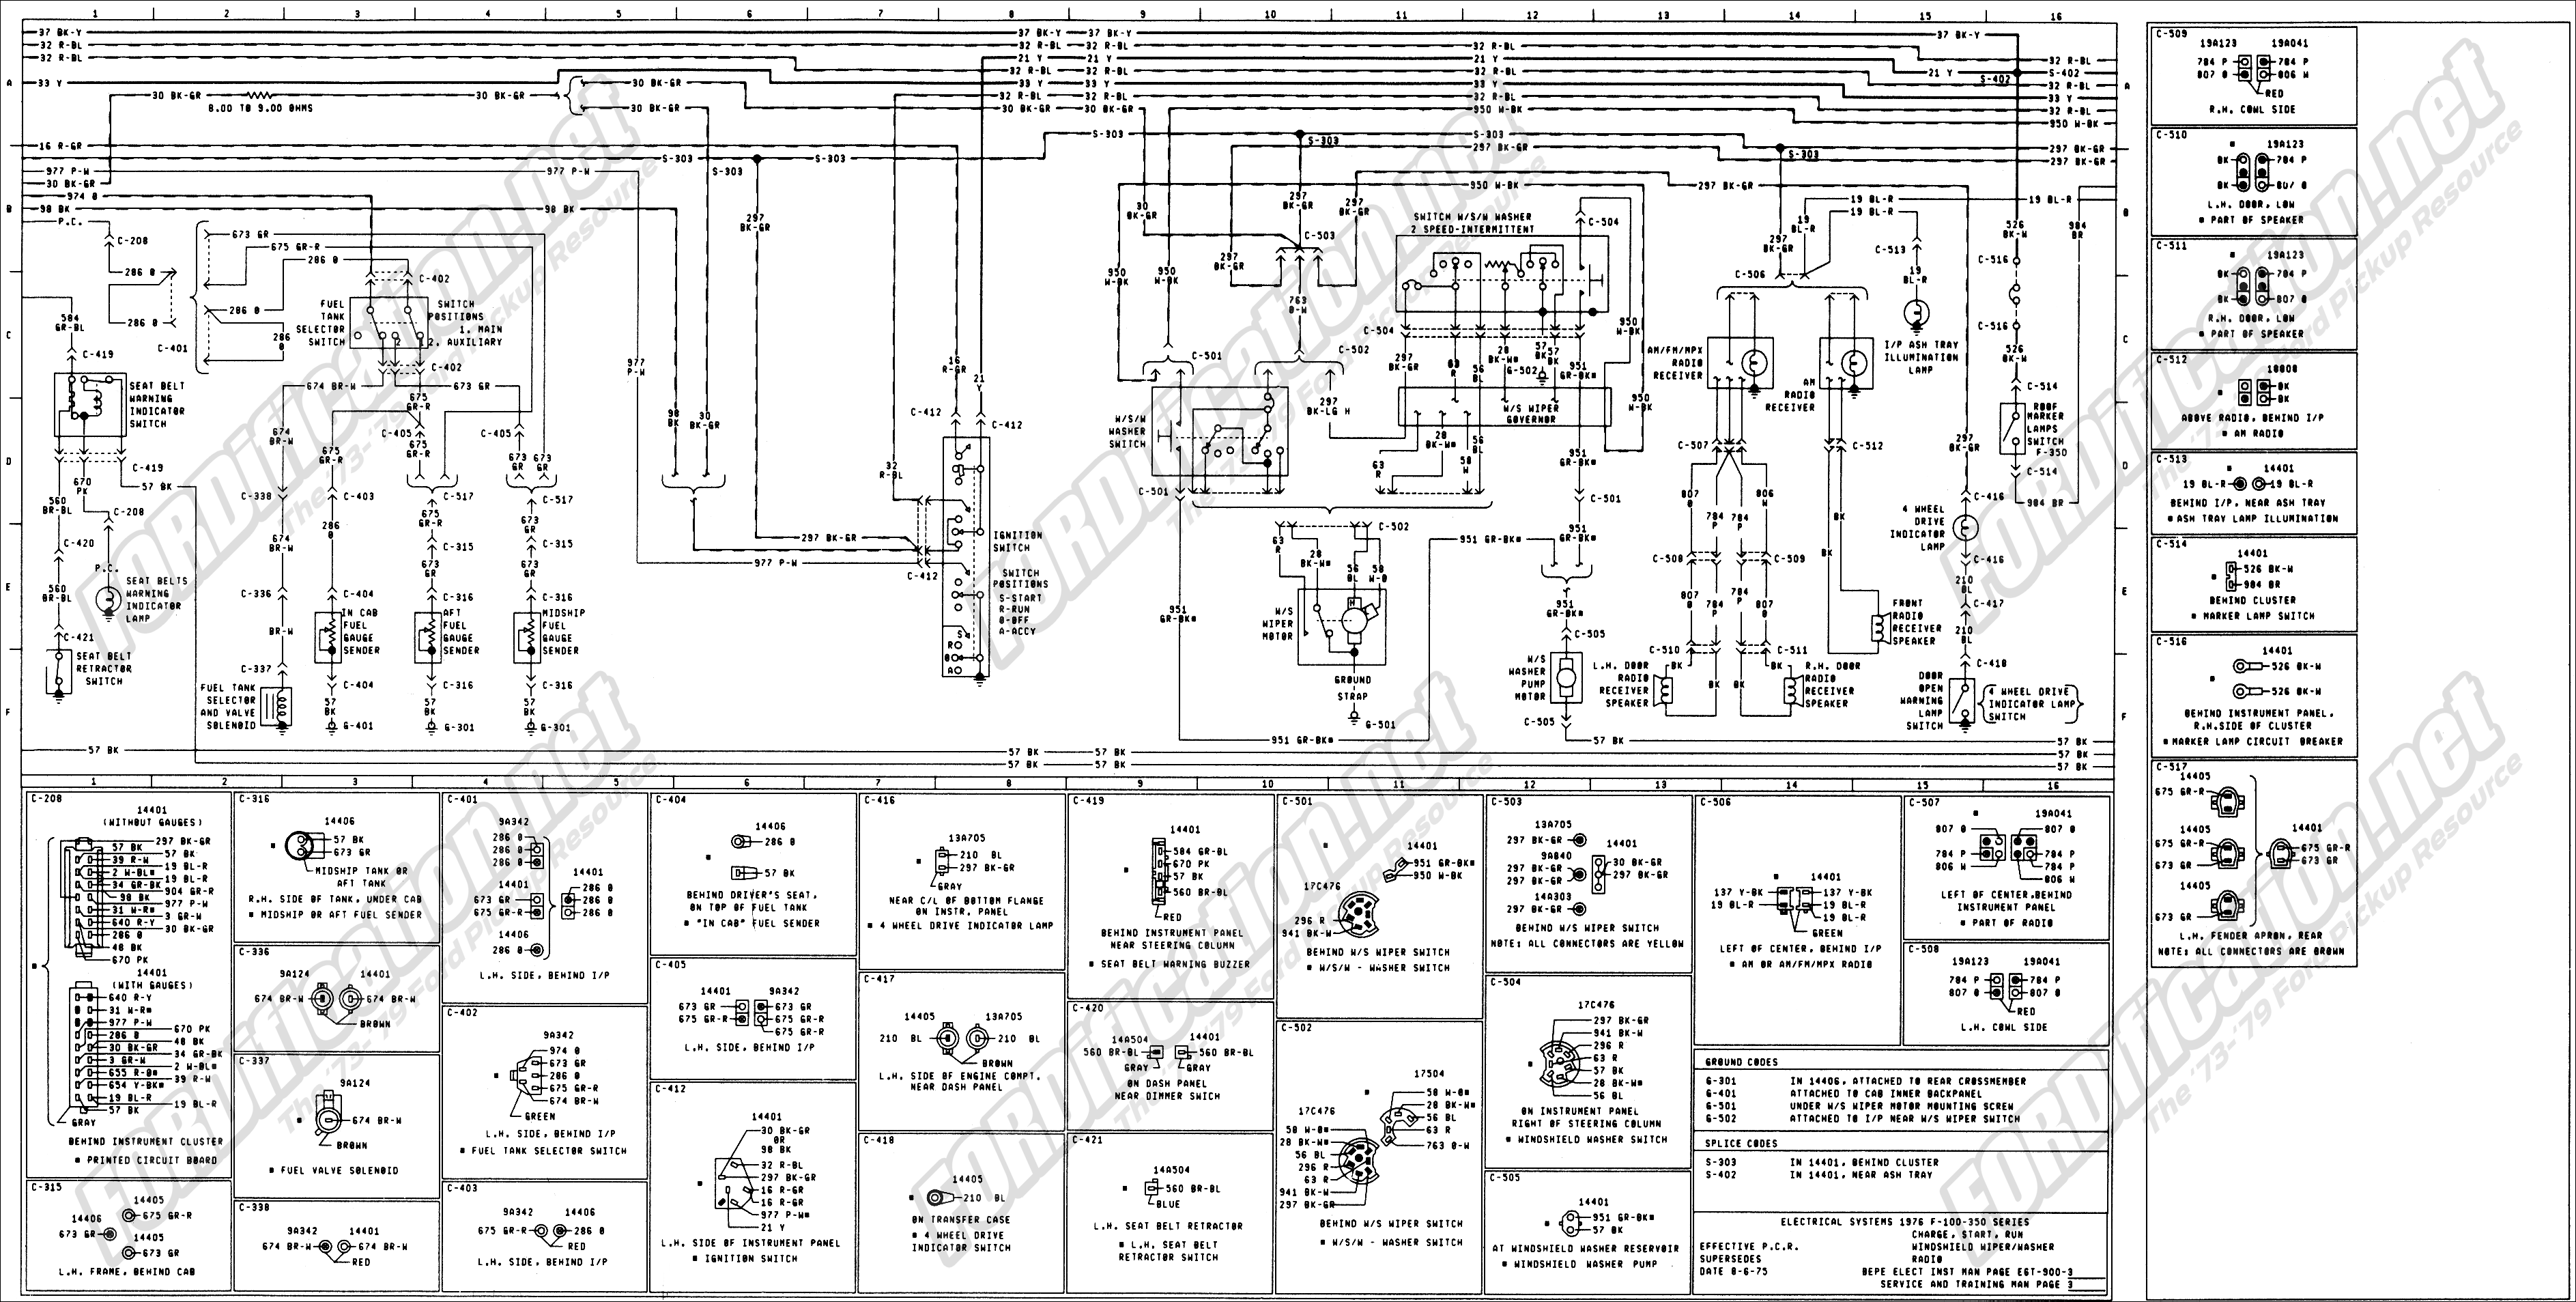 1976 F150 Wiring Diagram - Home Wiring Diagrams  Ford Focus Se Alternator Wiring Diagram on 2001 ford focus exhaust diagram, 2001 ford focus brakes diagram, 2006 ford freestyle alternator wiring diagram, 1989 ford bronco alternator wiring diagram, 2004 ford excursion alternator wiring diagram, 2001 ford focus battery diagram, 2001 dodge intrepid alternator wiring diagram,